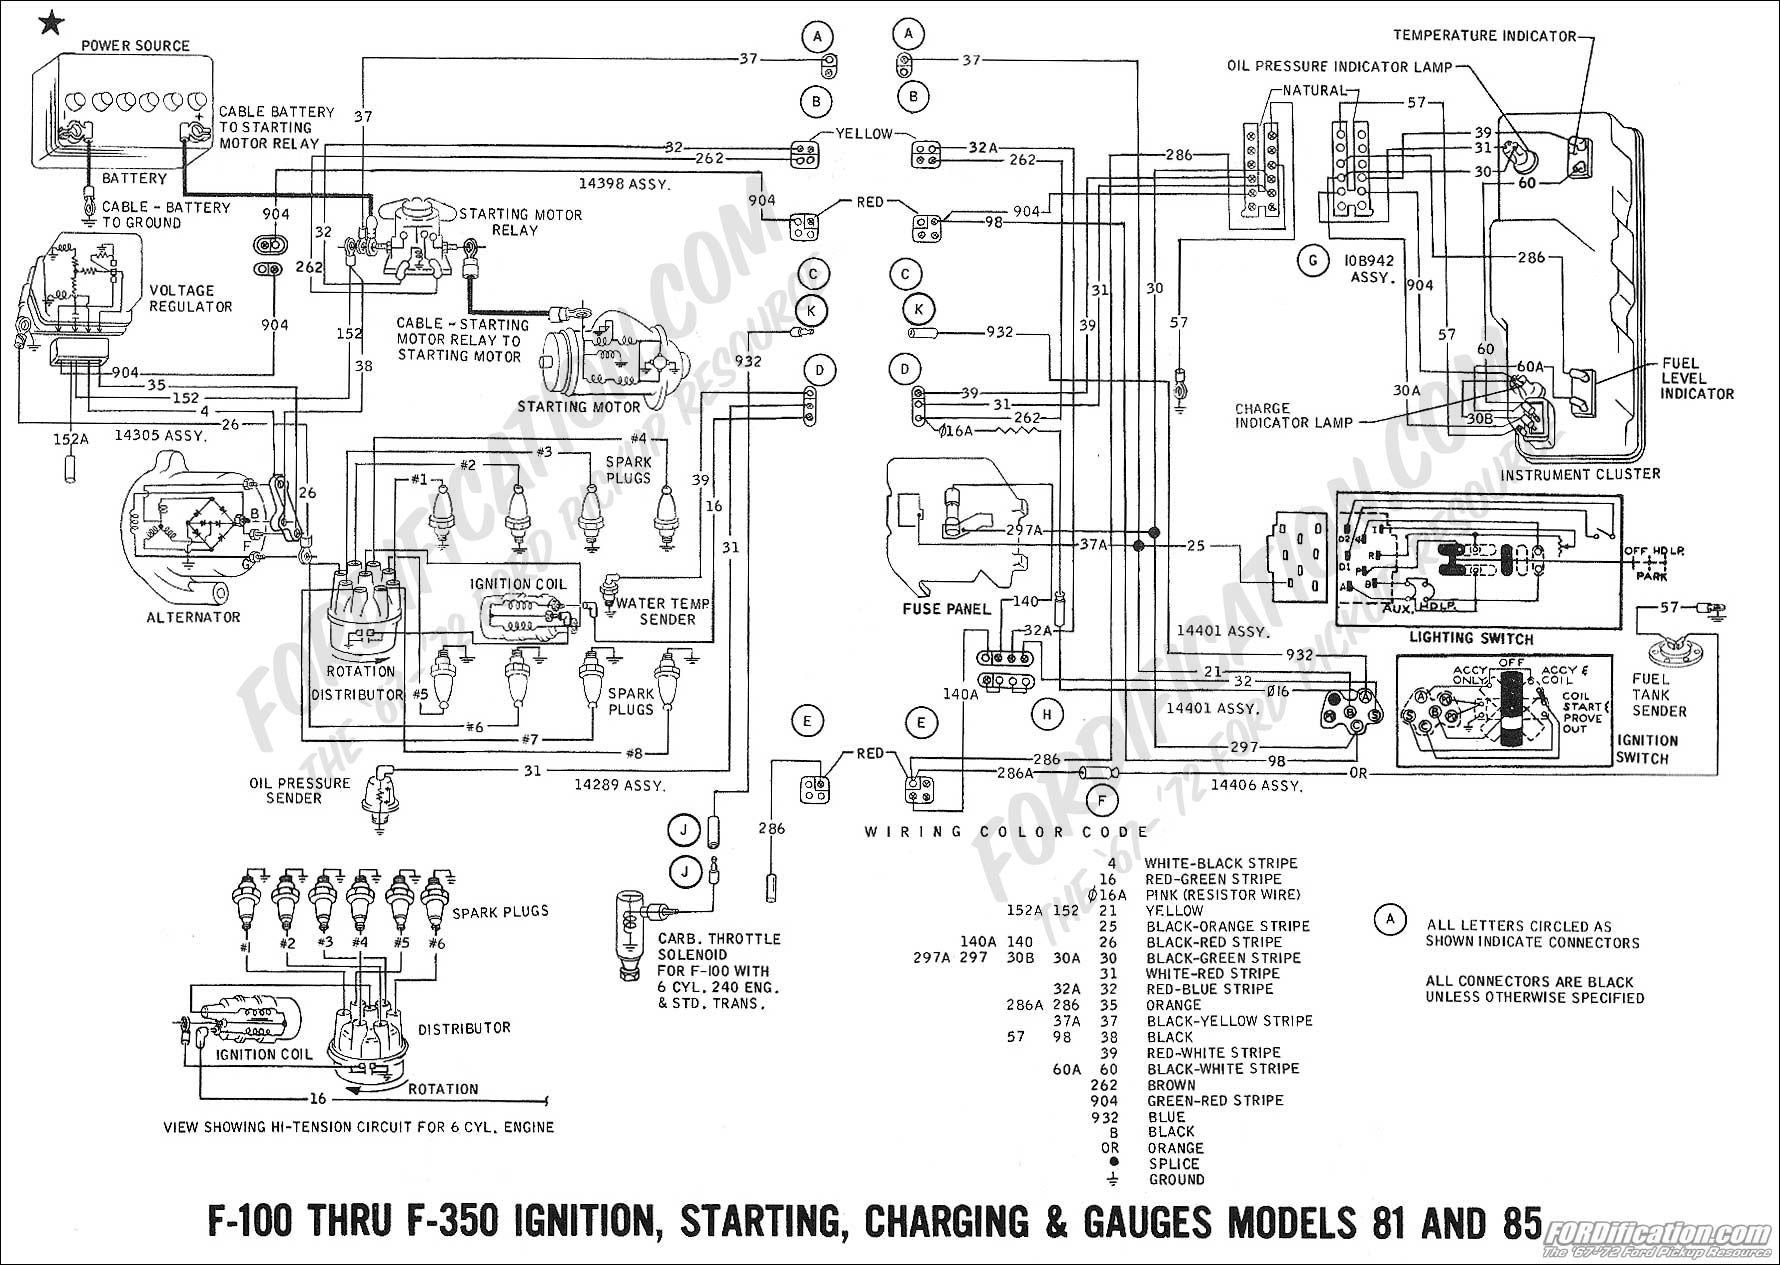 1995 Ford Mustang Fuse Box Wiring Library 95 Panel Diagram 1968 Schematic Enthusiast Rh Rasalibre Co